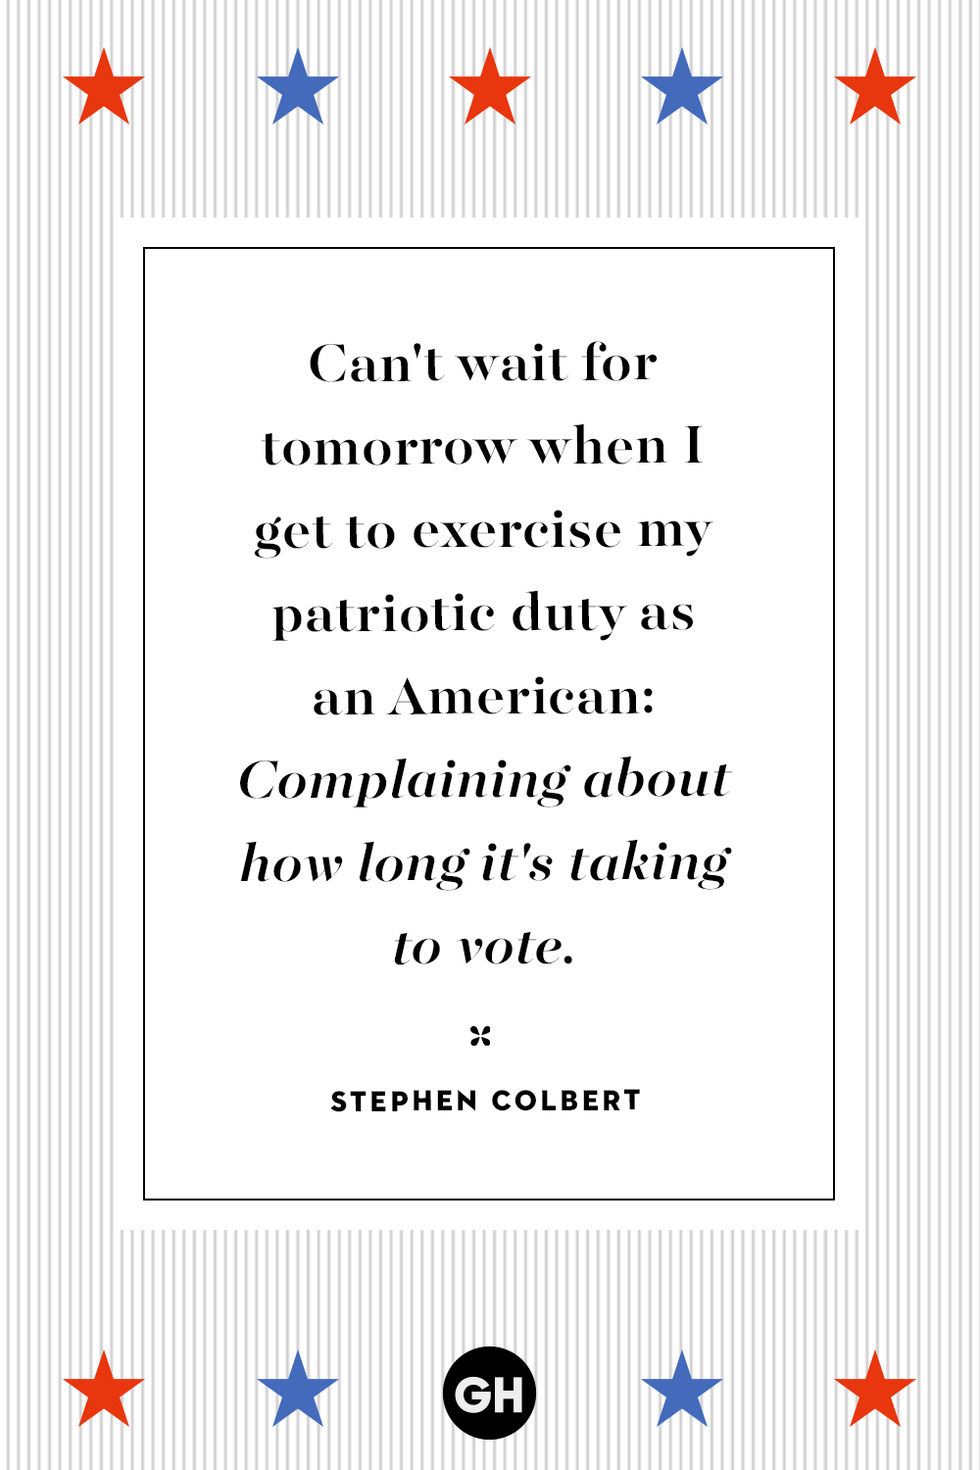 election-quotes-voting-quotes-14-stephen-colbert-1567019364